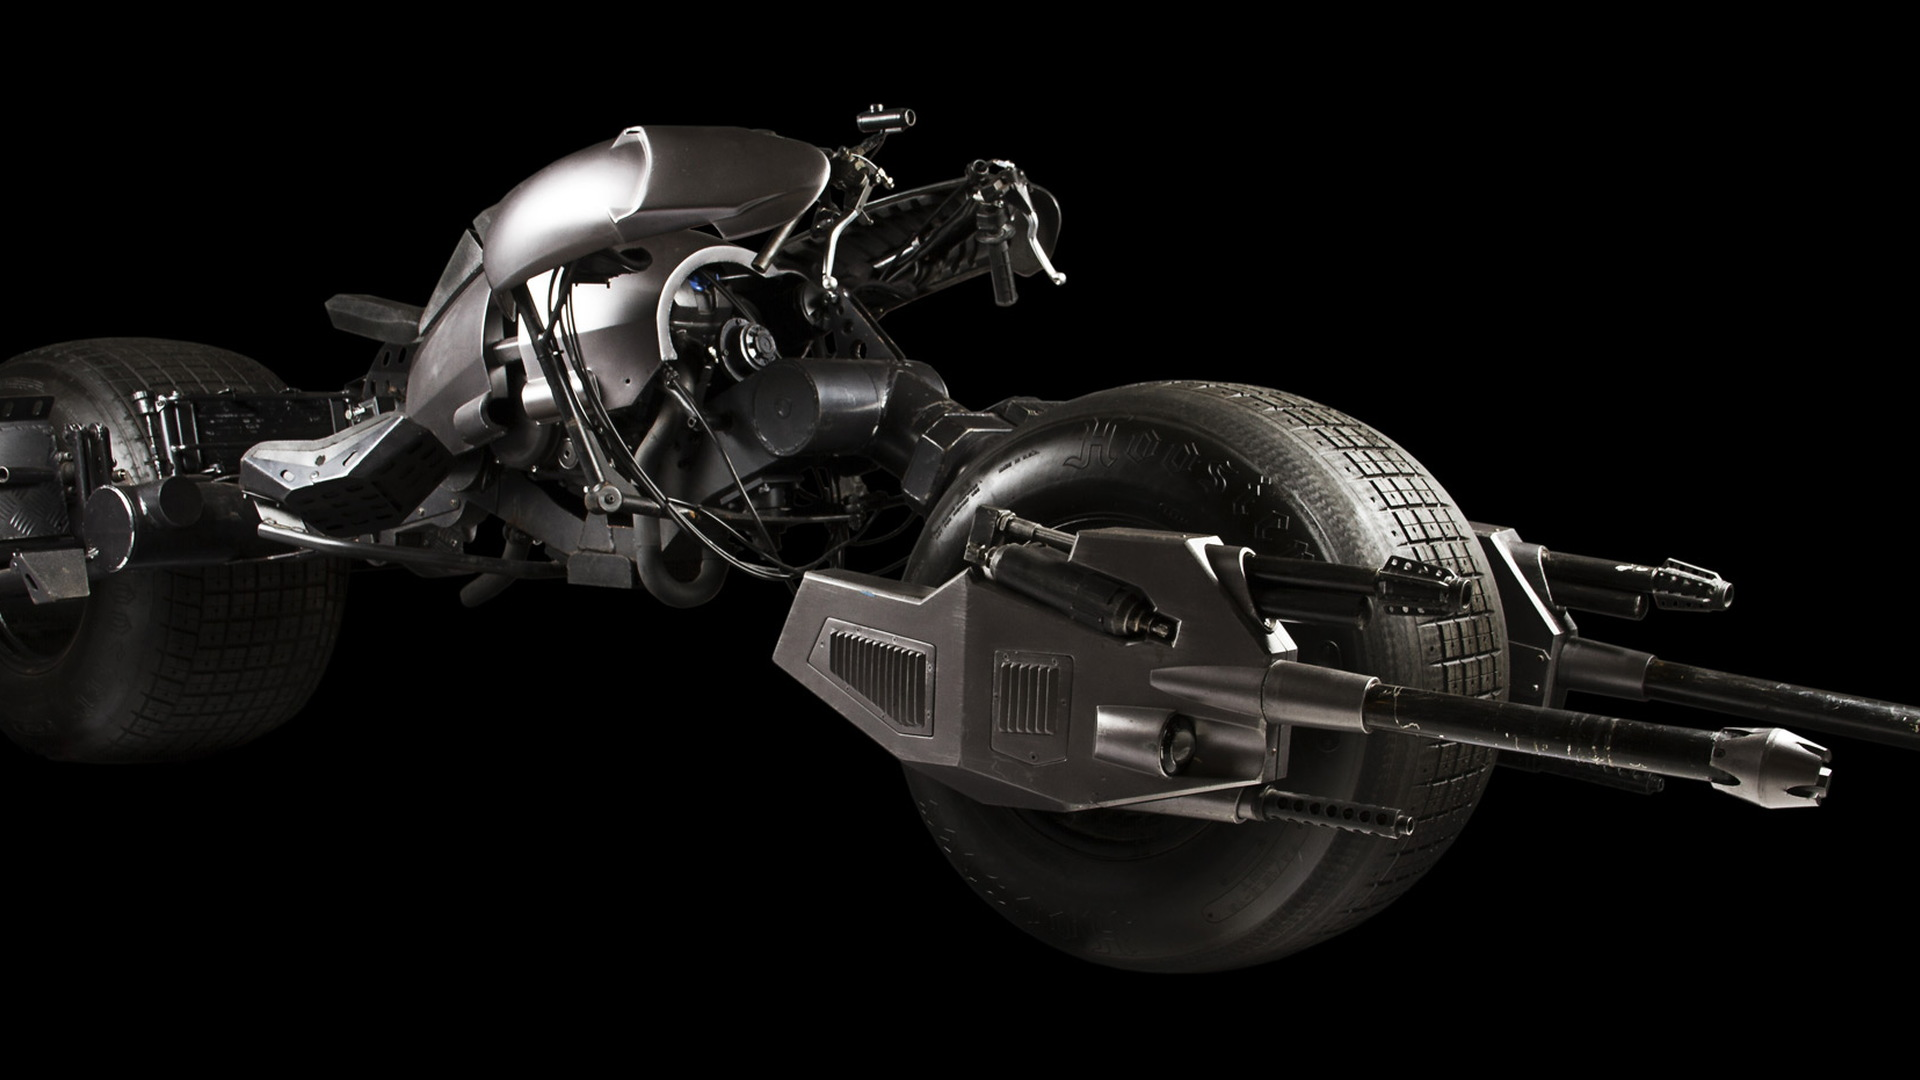 Batpod from 'The Dark Knight Rises'